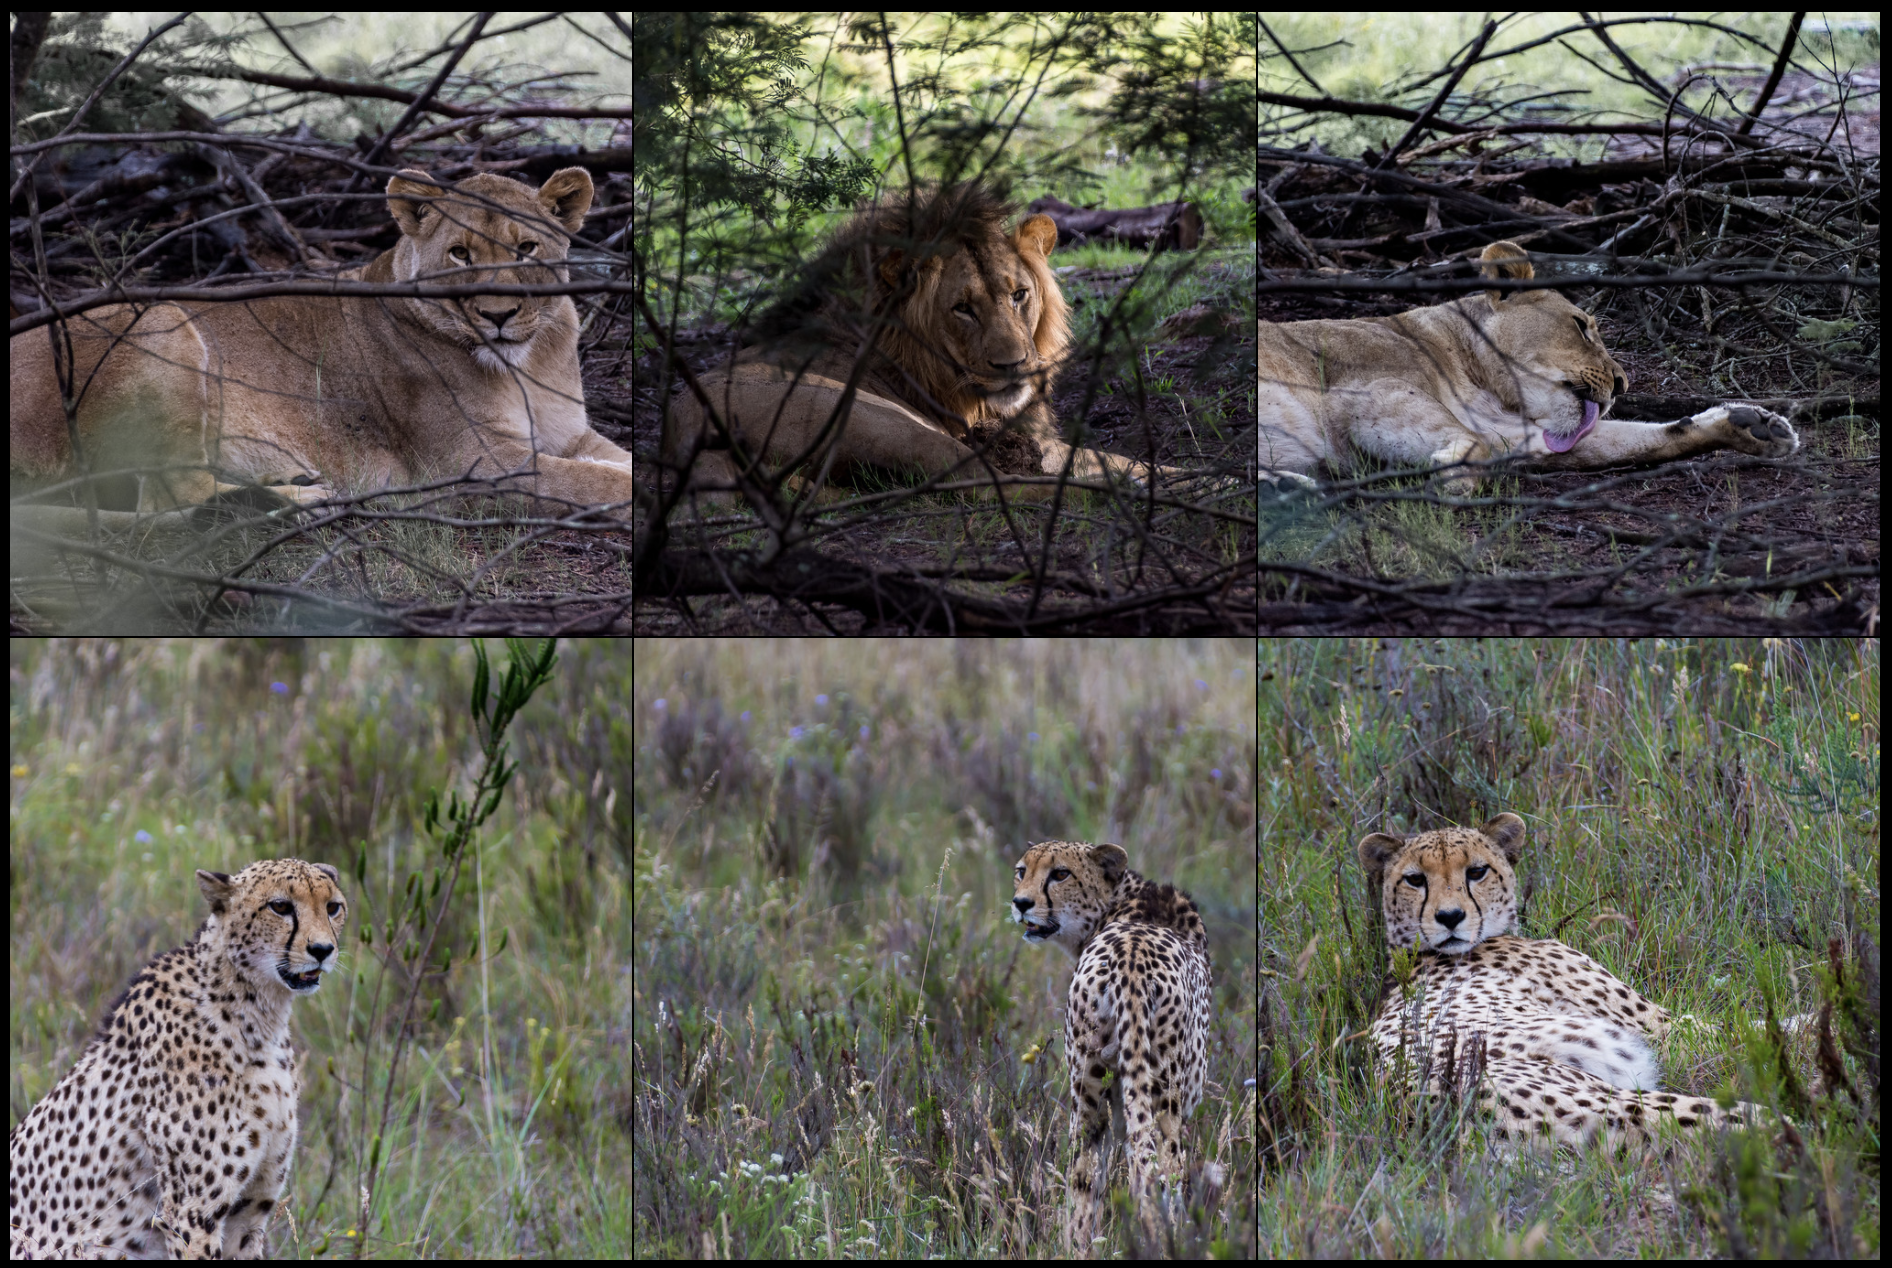 A grid photo showing three pictures of lions across the top and three pictures of a cheetah across the bottom